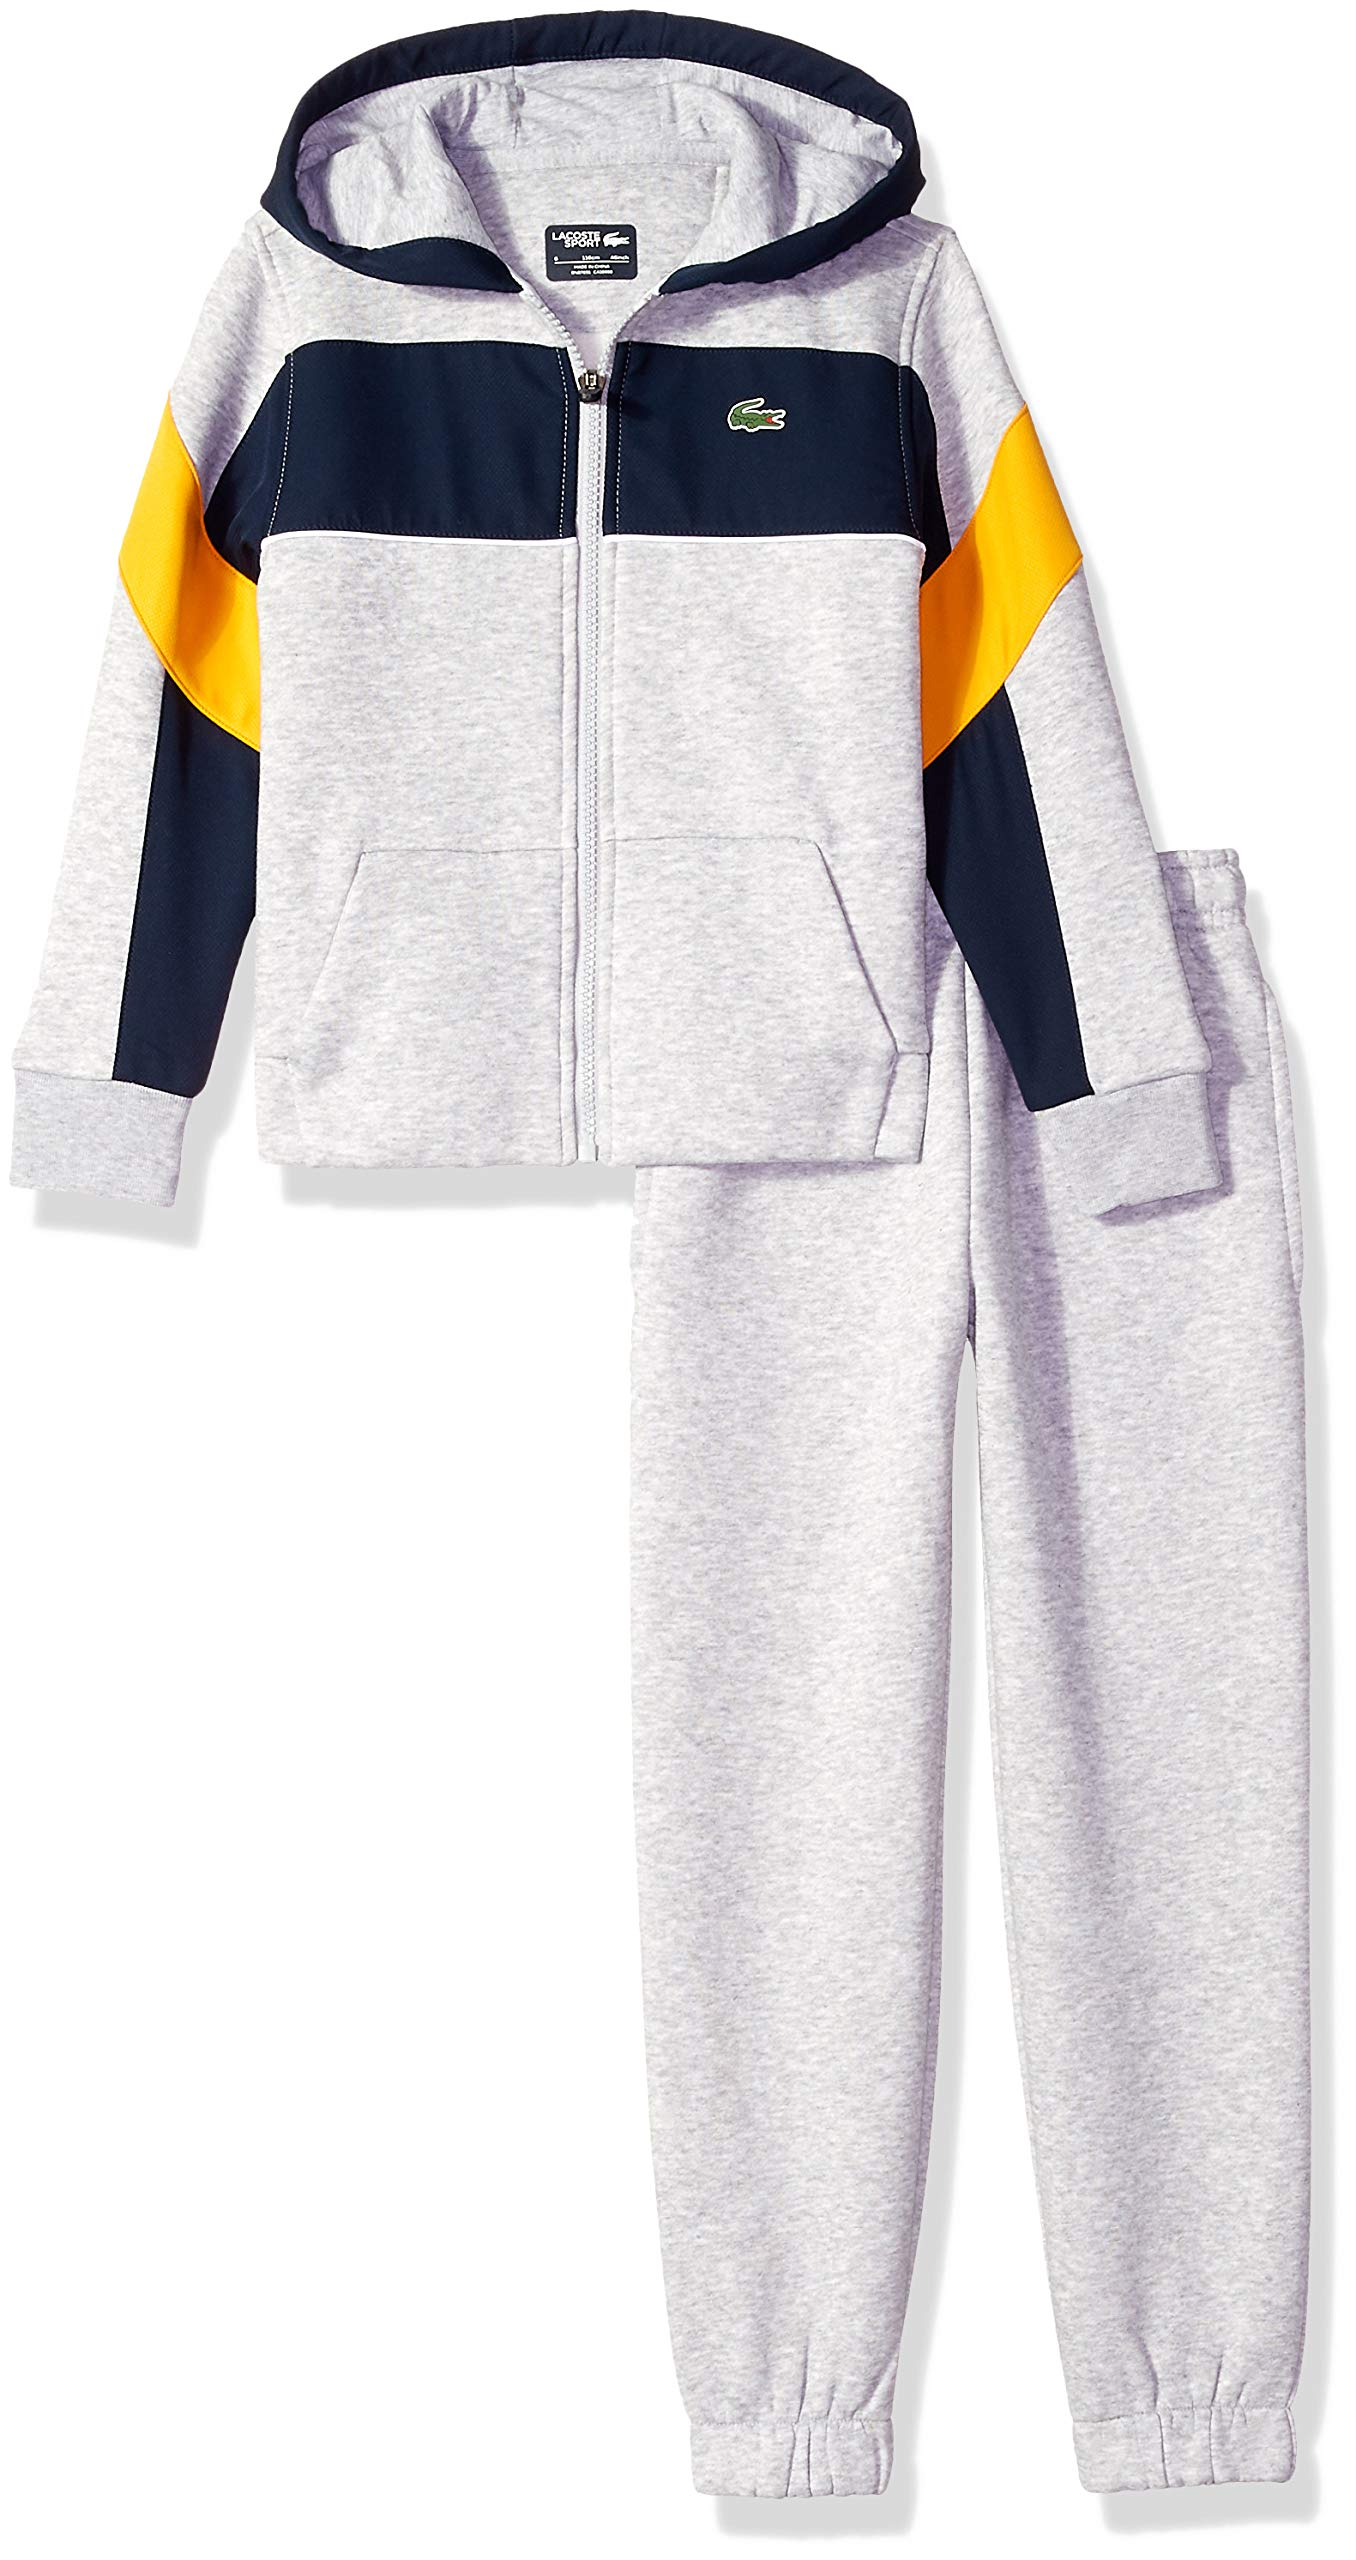 Lacoste Big Boy Sport Mix of Fabrics Color Block Tracksuits, Silver Chine/Navy Blue/PO 16